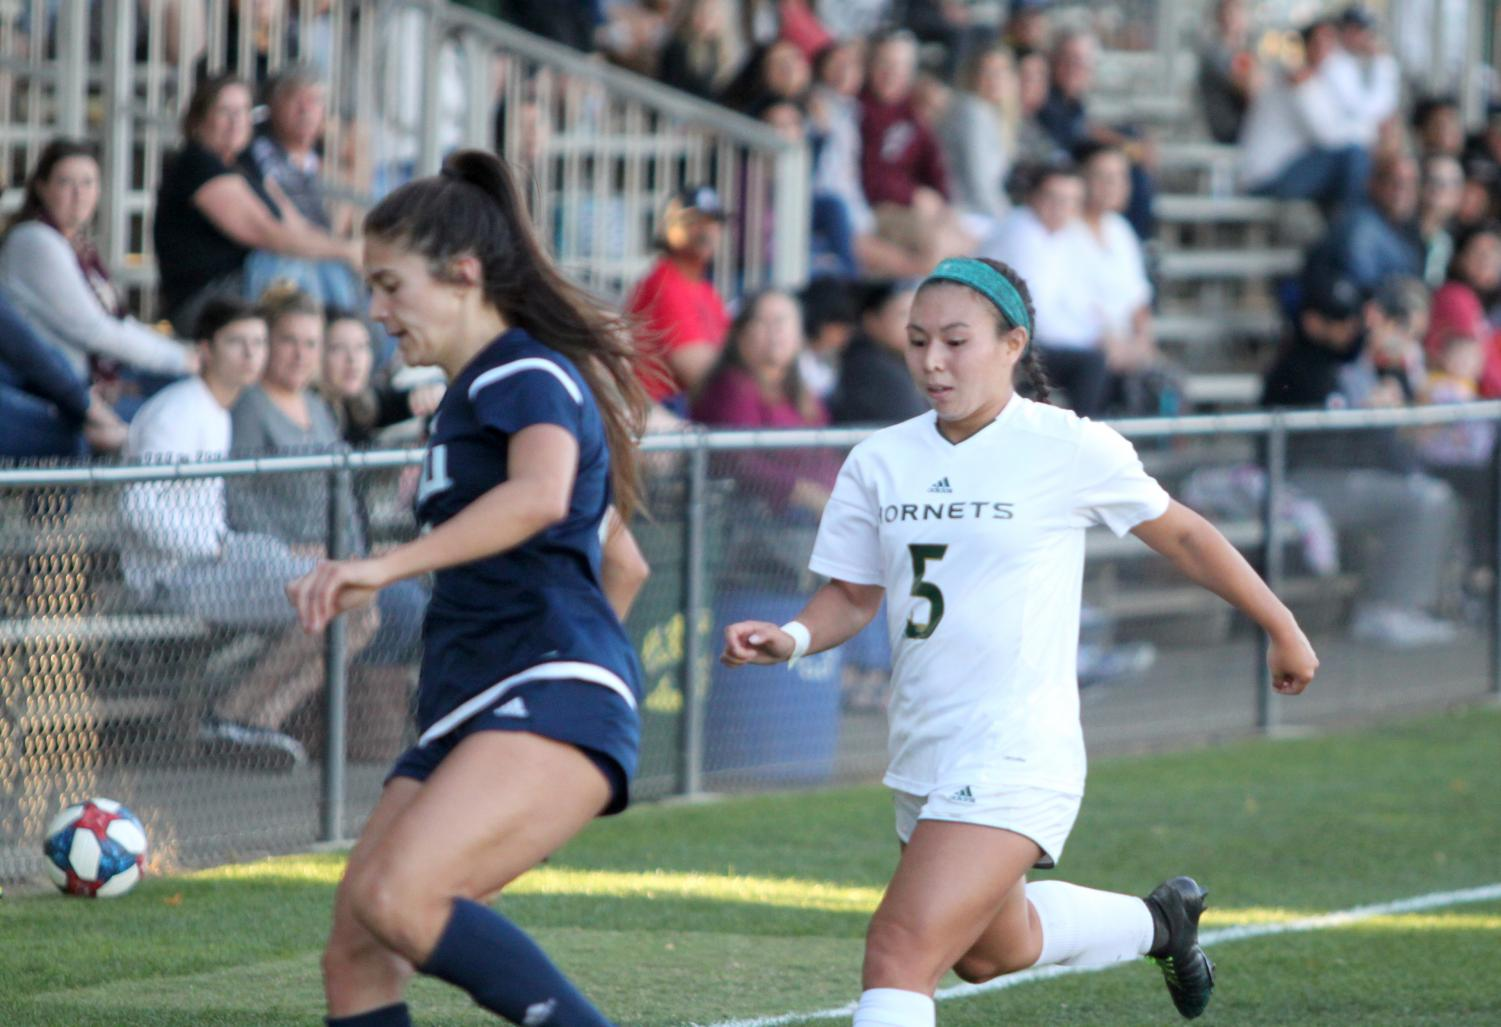 Sac State junior forward Kylee Kim-Bustillos attempts to steal the ball against Northern Arizona Friday, Oct. 4 at Hornet Field. Kim-Bustillos scored one goal in the Hornets 3-0 win against Southern Utah Sunday.